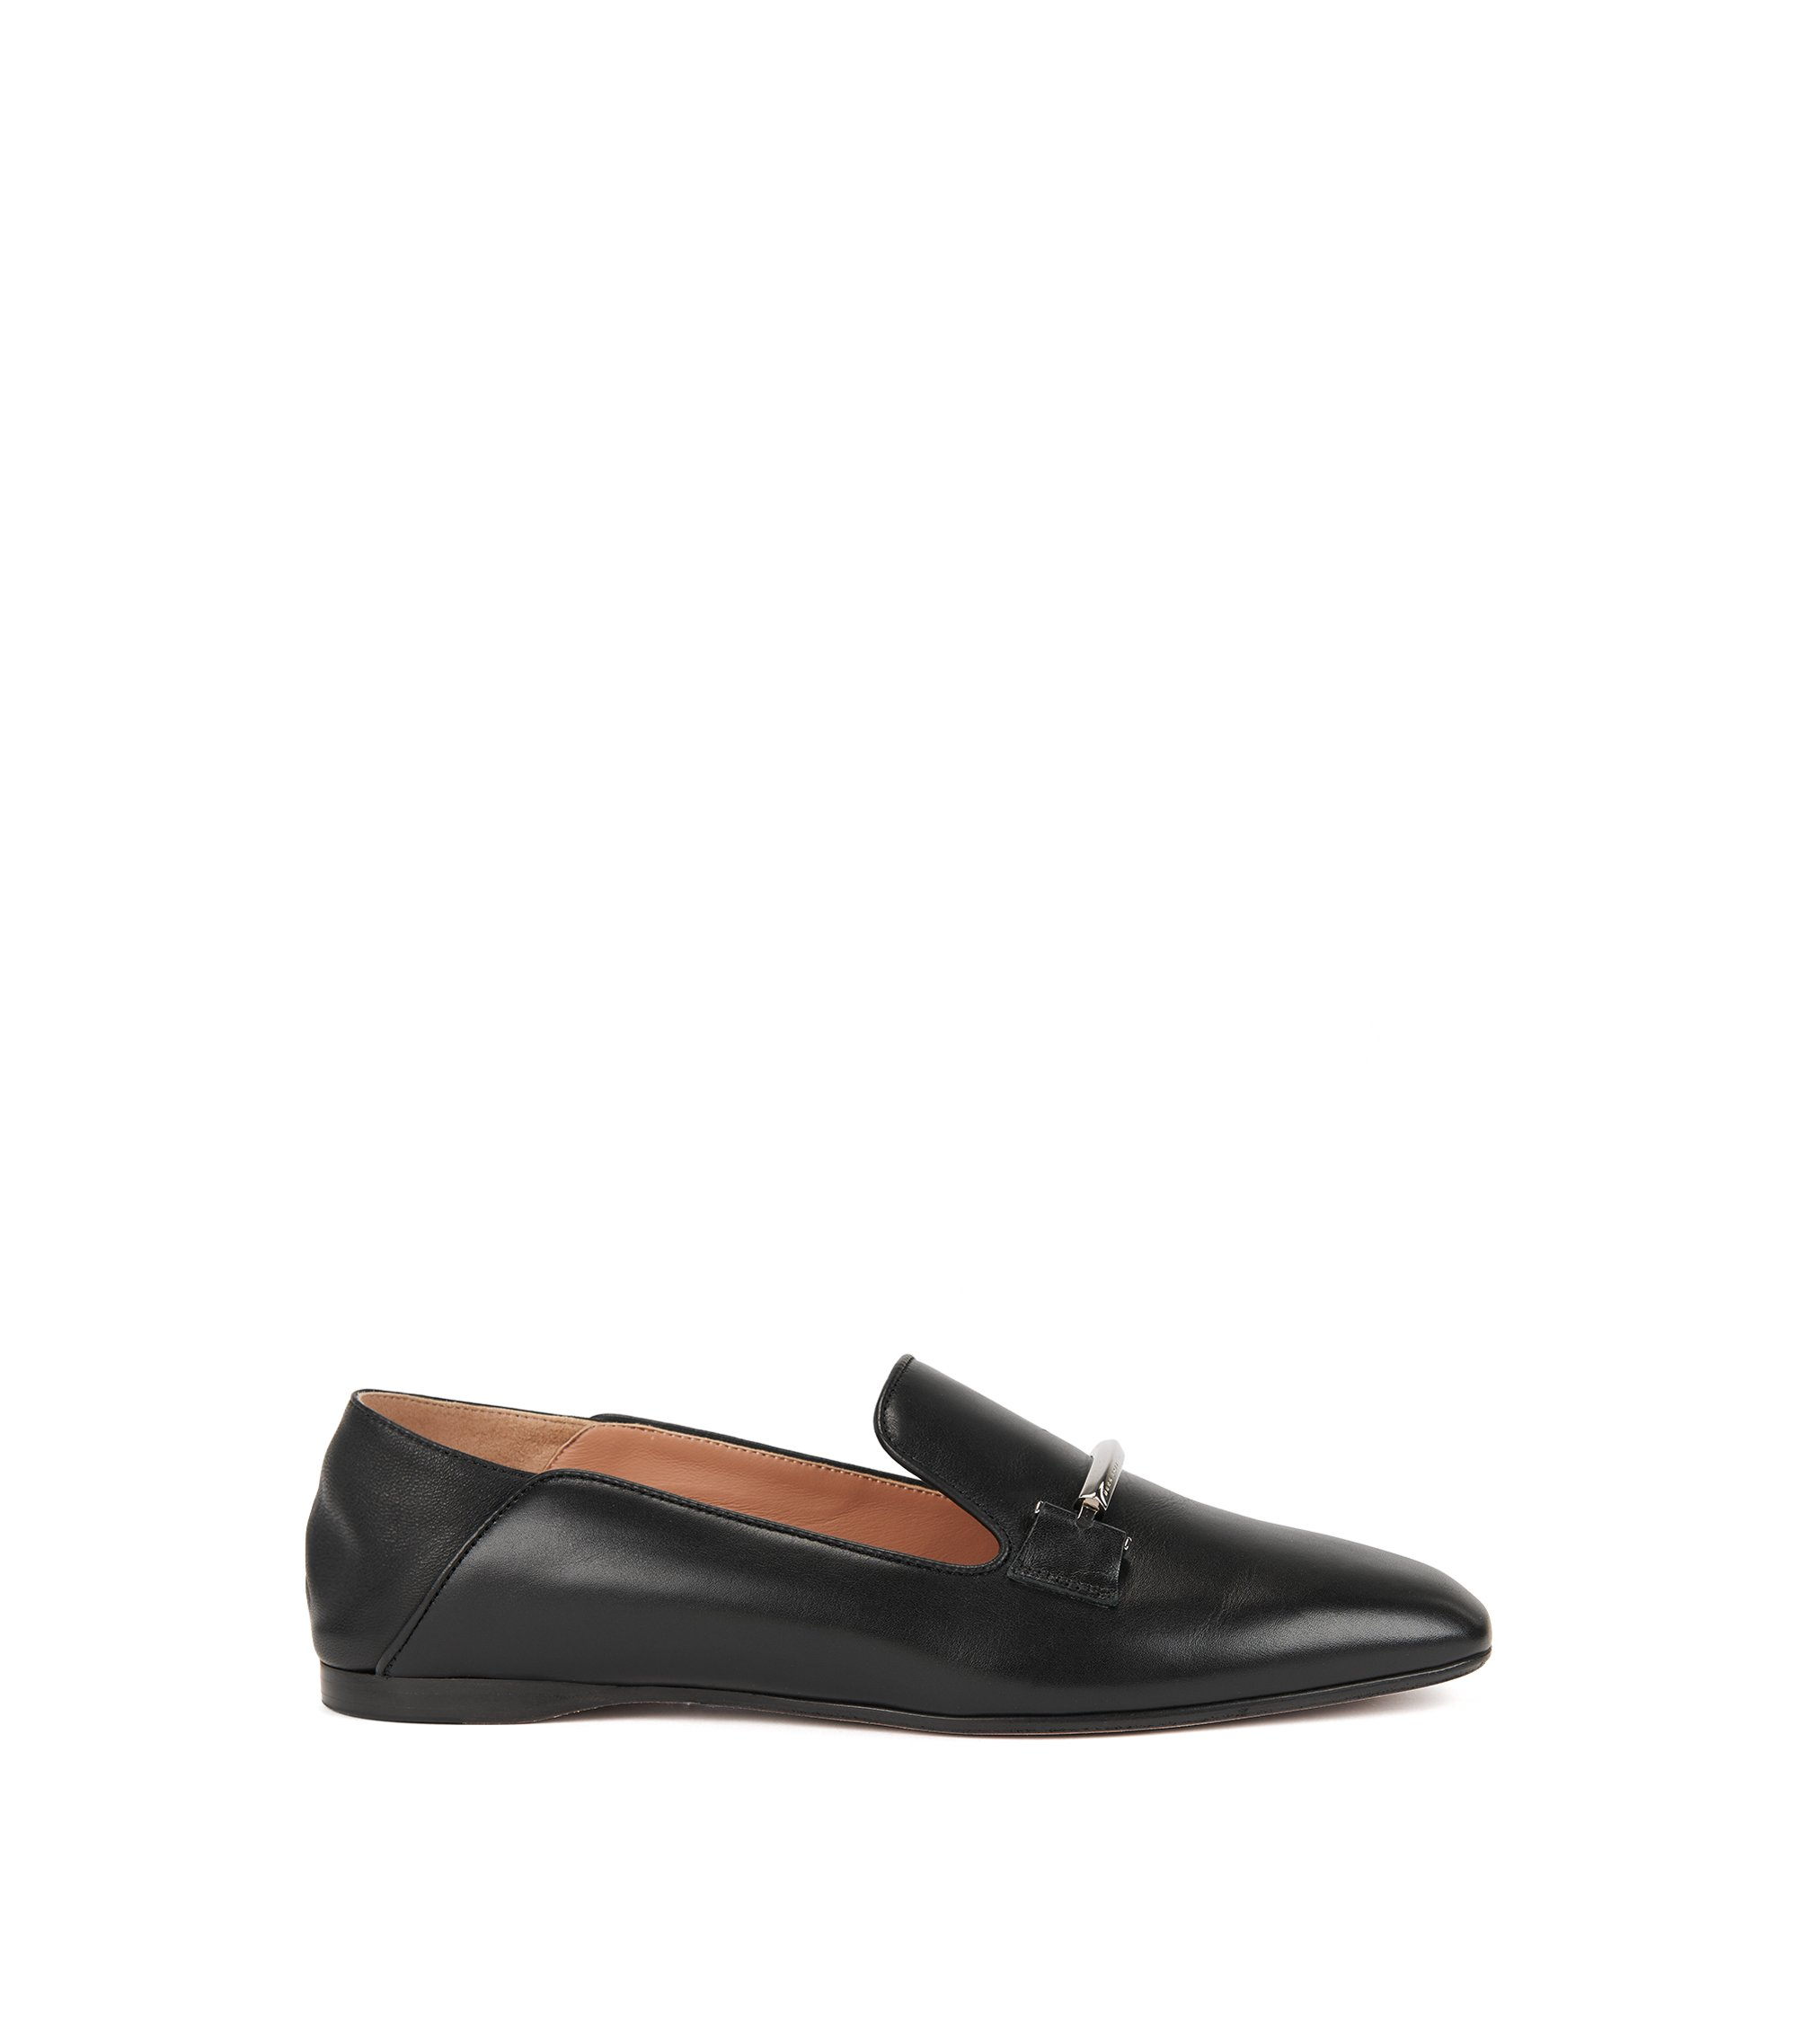 Leather loafers with fold-down heel counters, Black